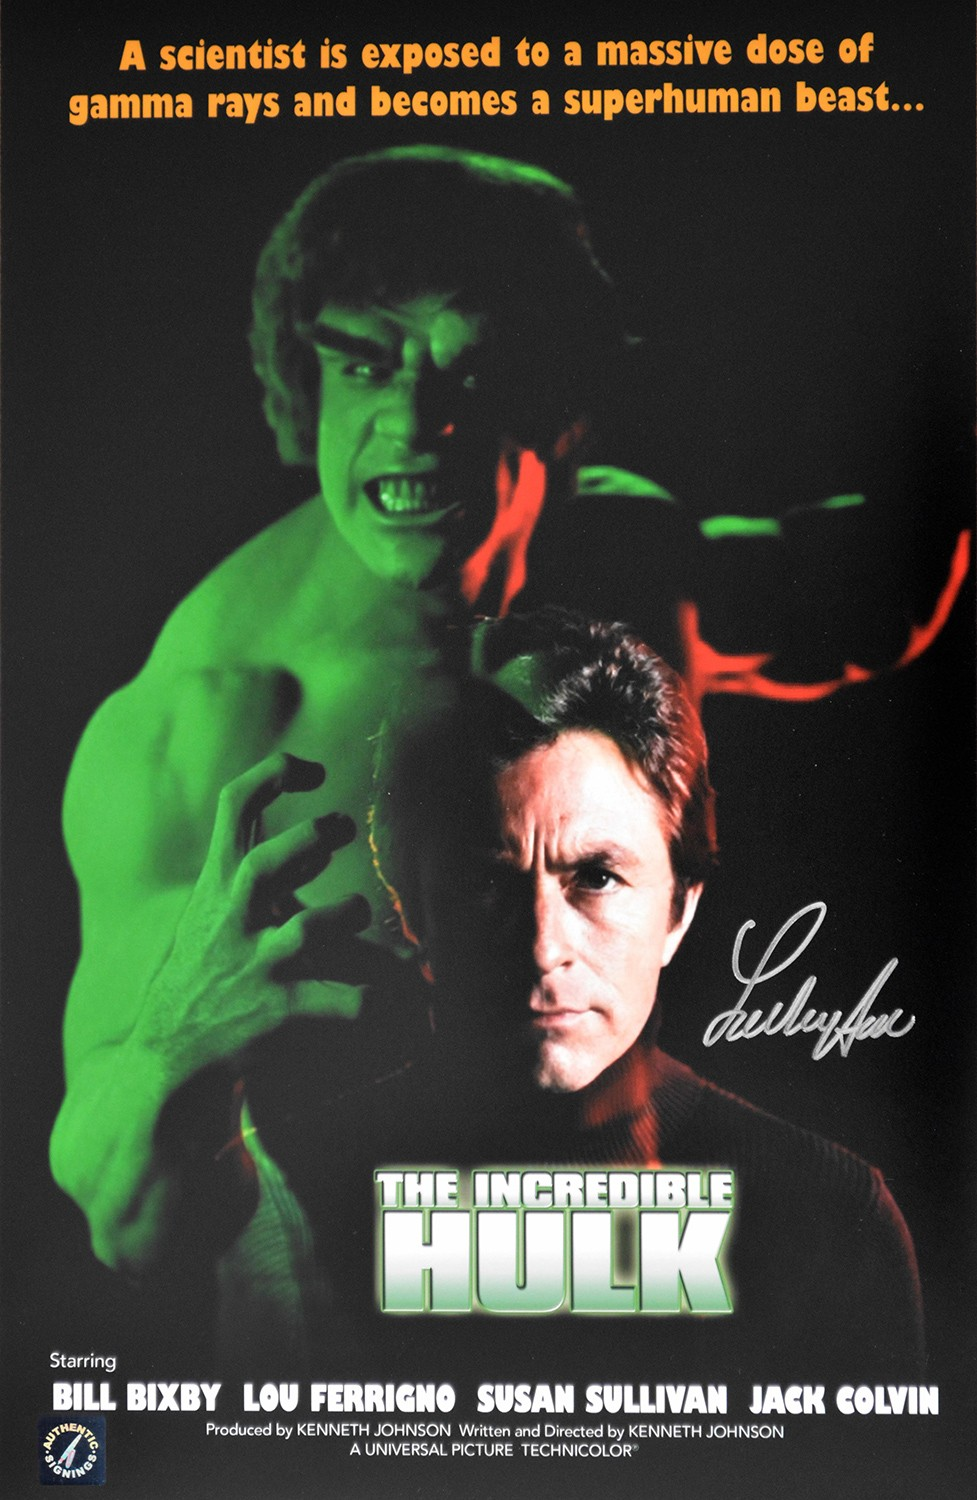 Lou Ferrigno Autographed The Incredible Hulk 11x17 Movie Poster